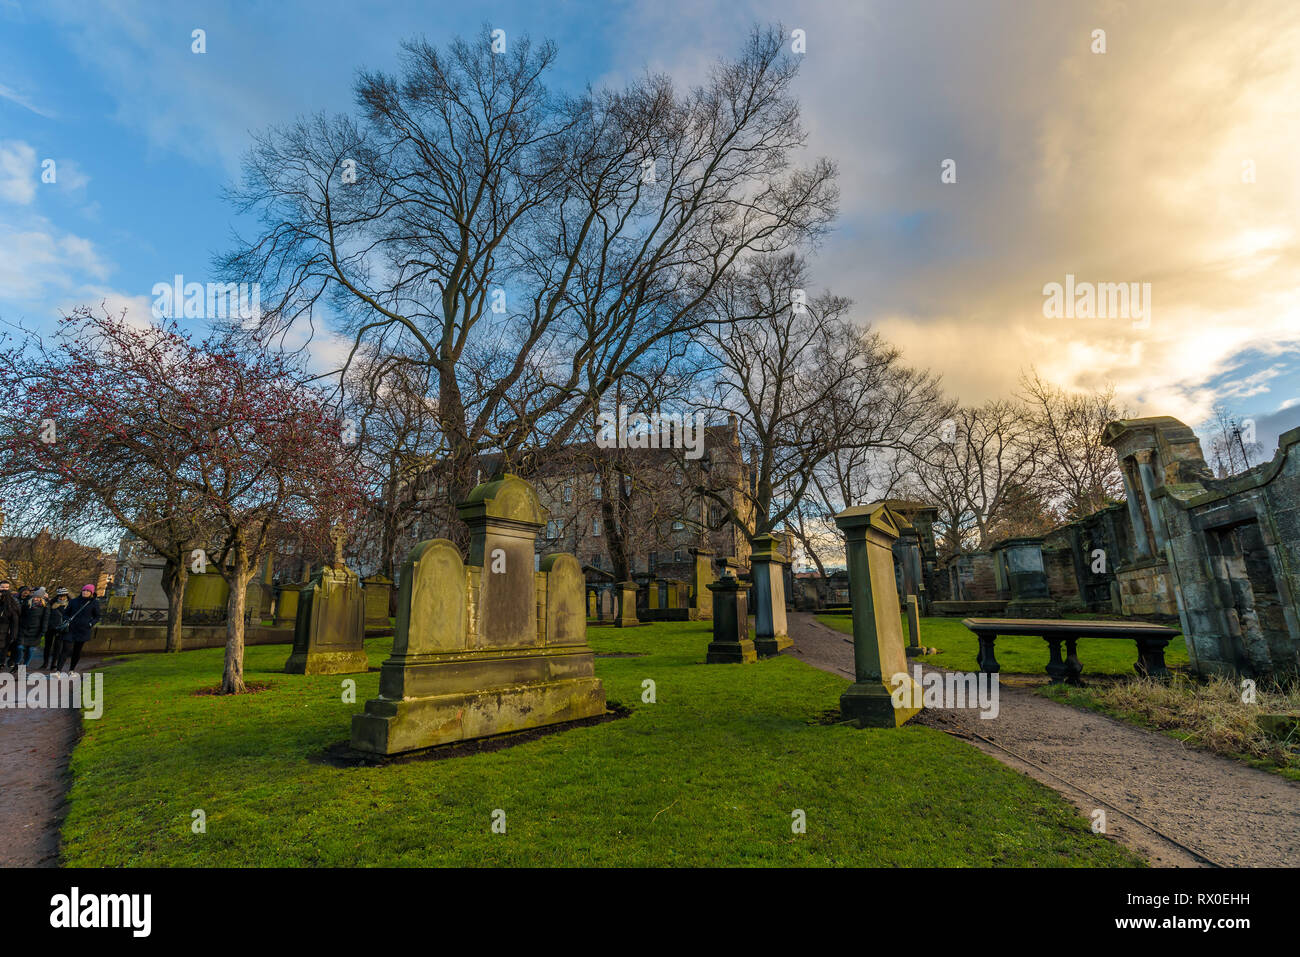 Edinburgh, Scotland - View of Greyfriars Kirkyard, Churchyard with a shop, graves and museum, telling the story of the loyal dog, Greyfriars Bobby. Stock Photo